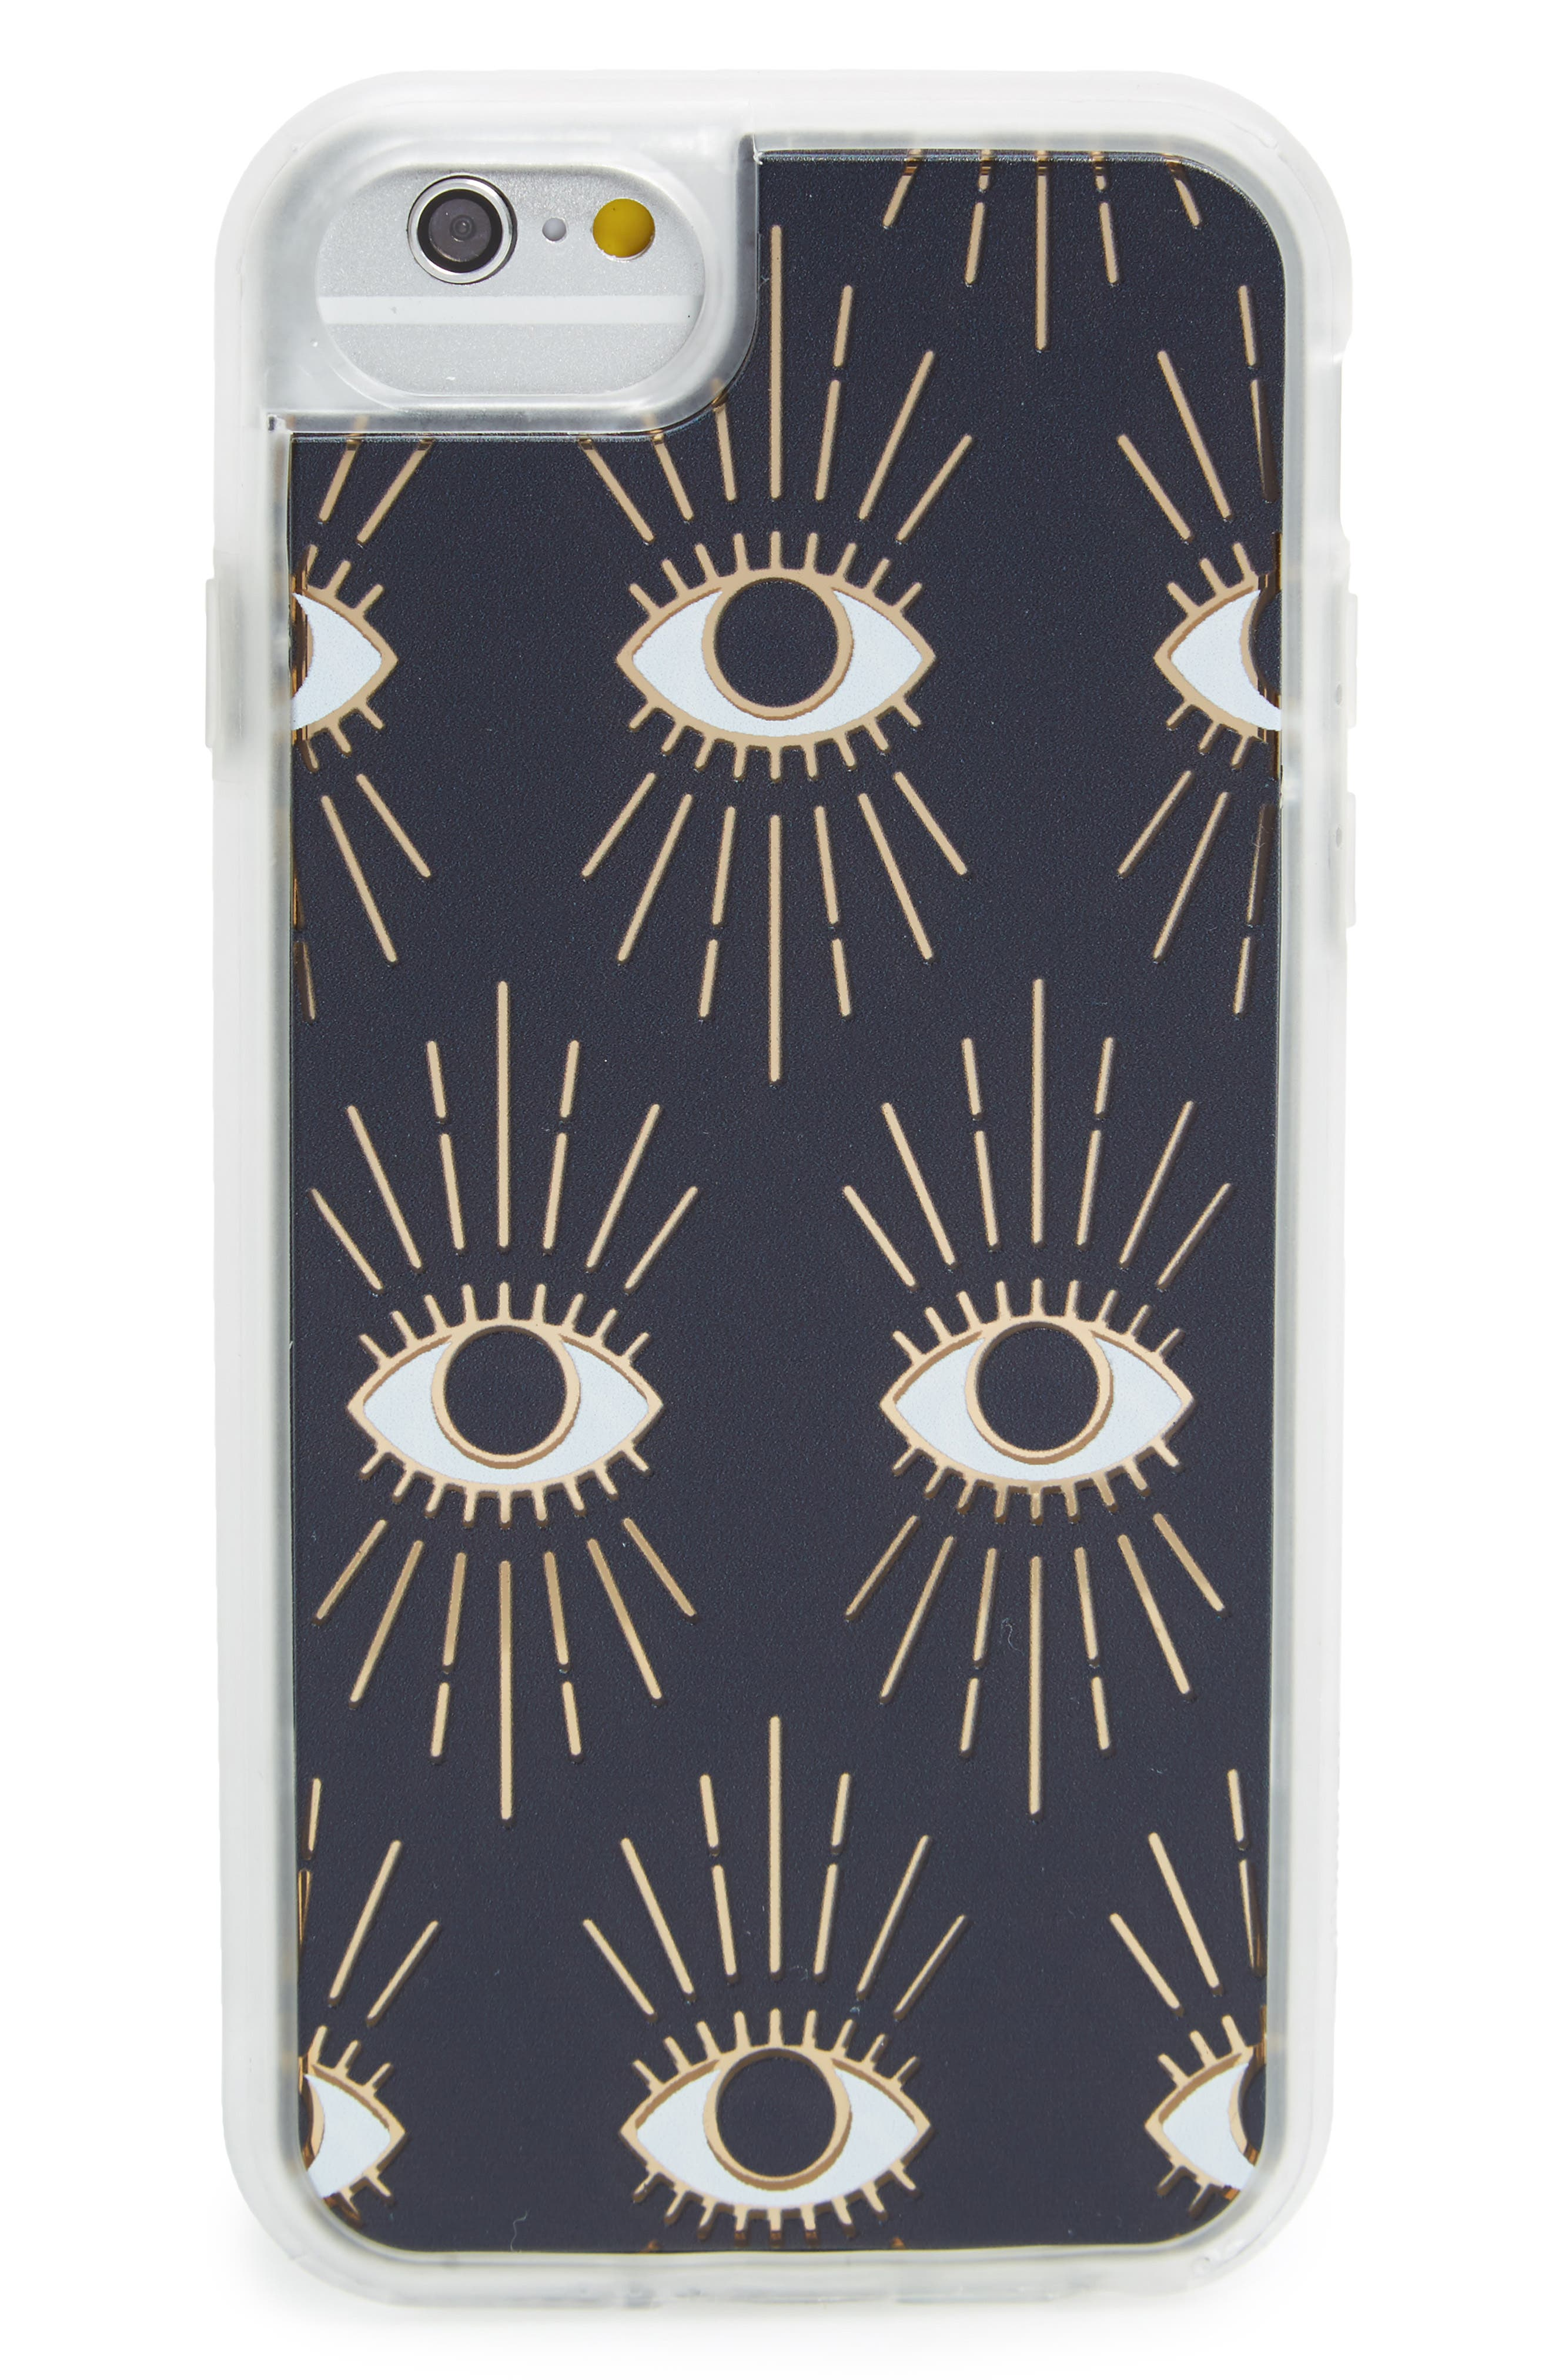 Main Image - MILKYWAY The Eye iPhone 6/6s/7 Case